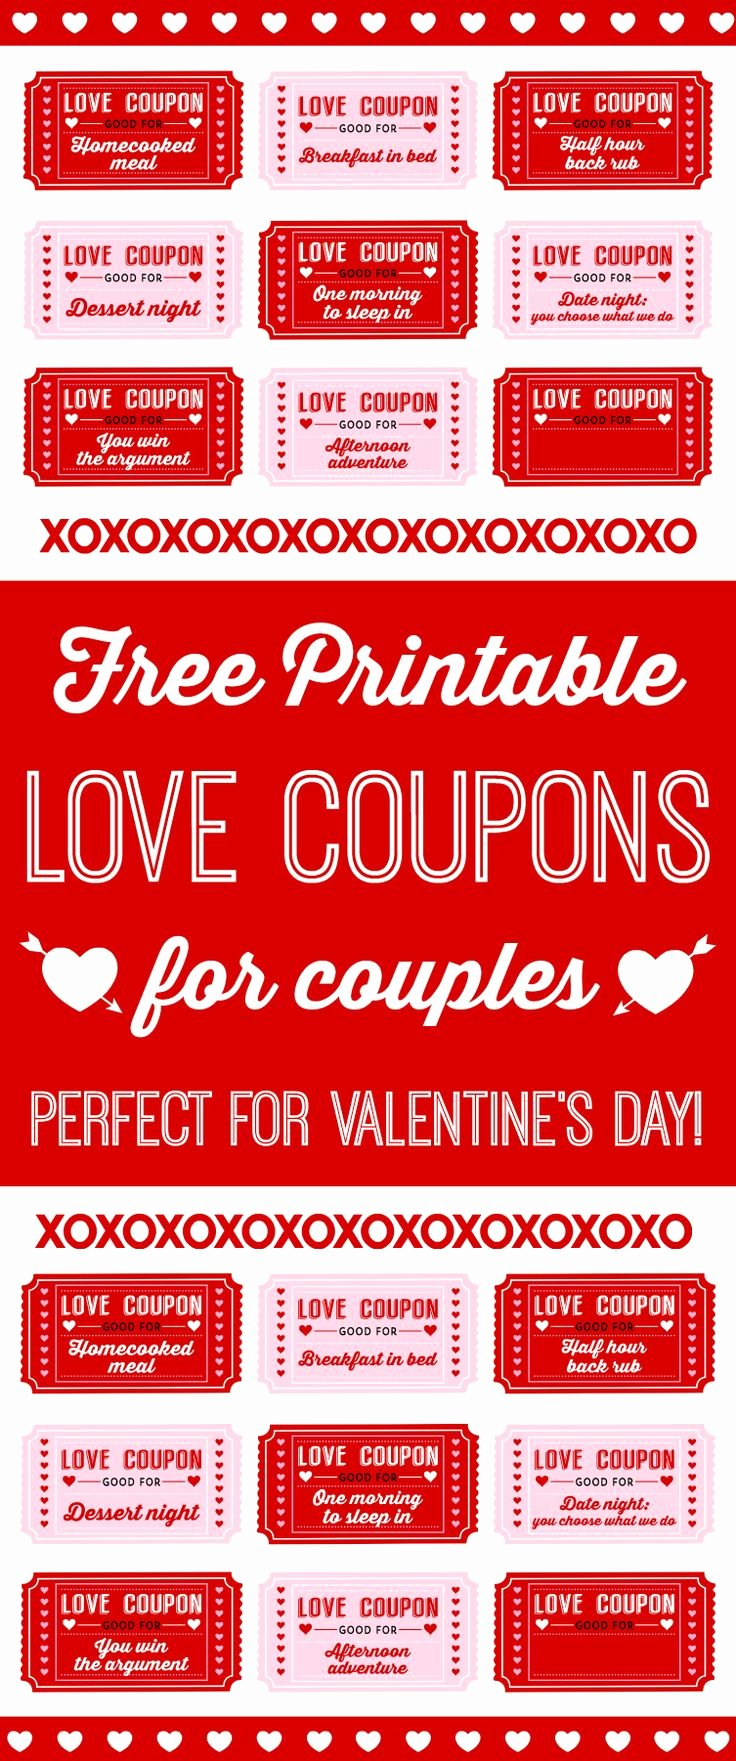 Valentine Day Coupon Template Unique Free Printable Love Coupons for Couples 753×1 802